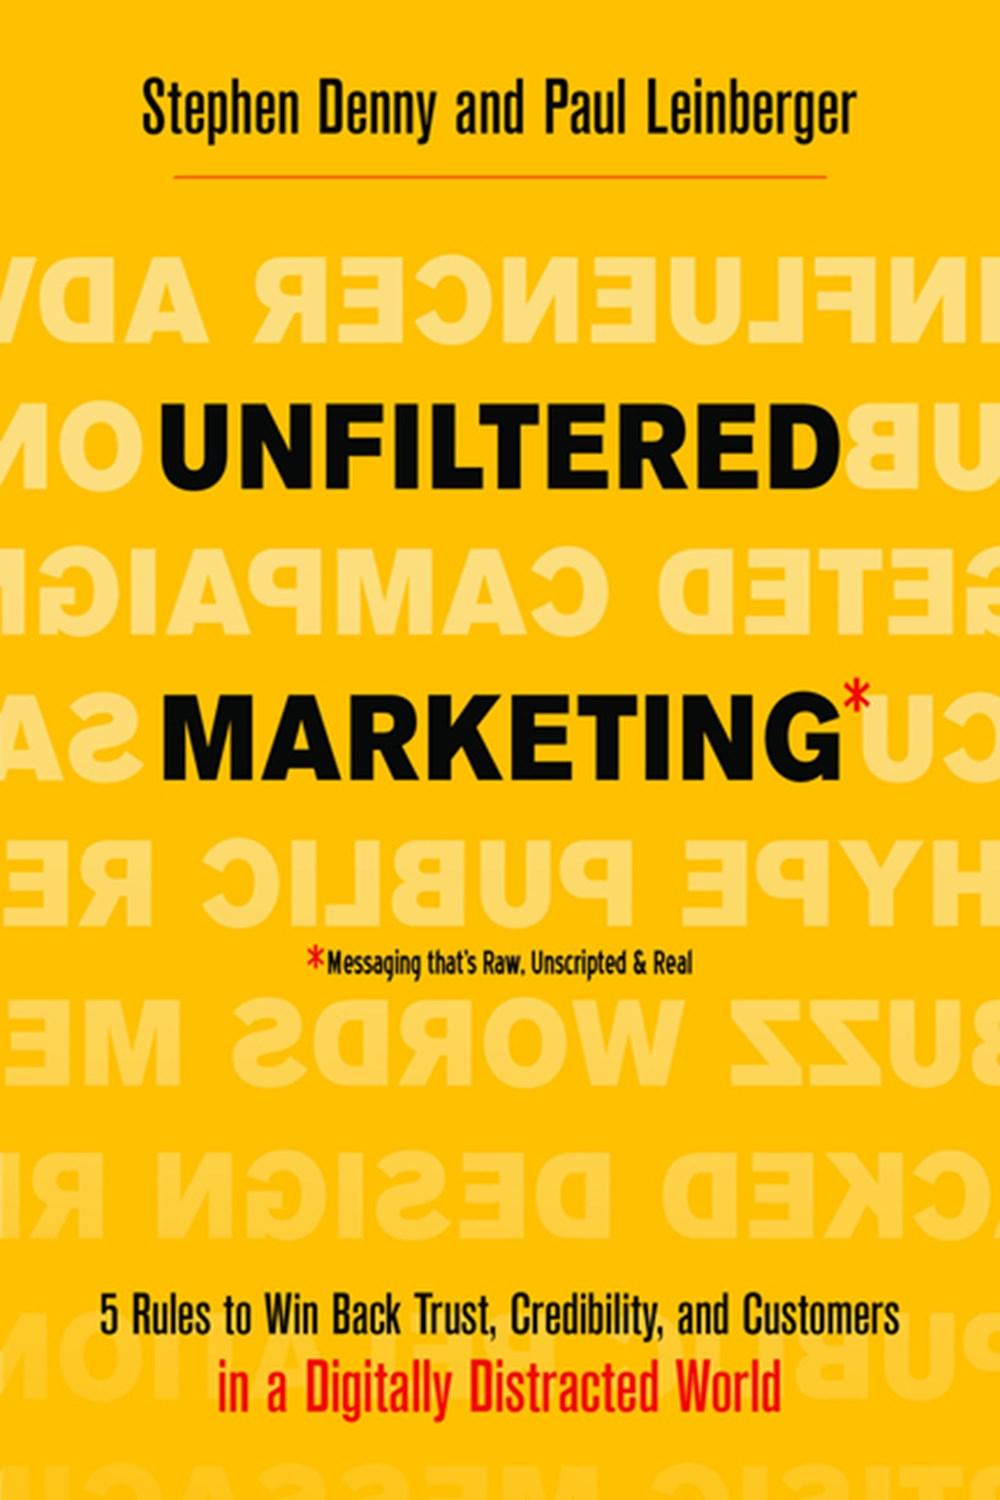 Unfiltered Marketing 5 Rules to Win Back Trust, Credibility, and Customers in a Digitally Distracted